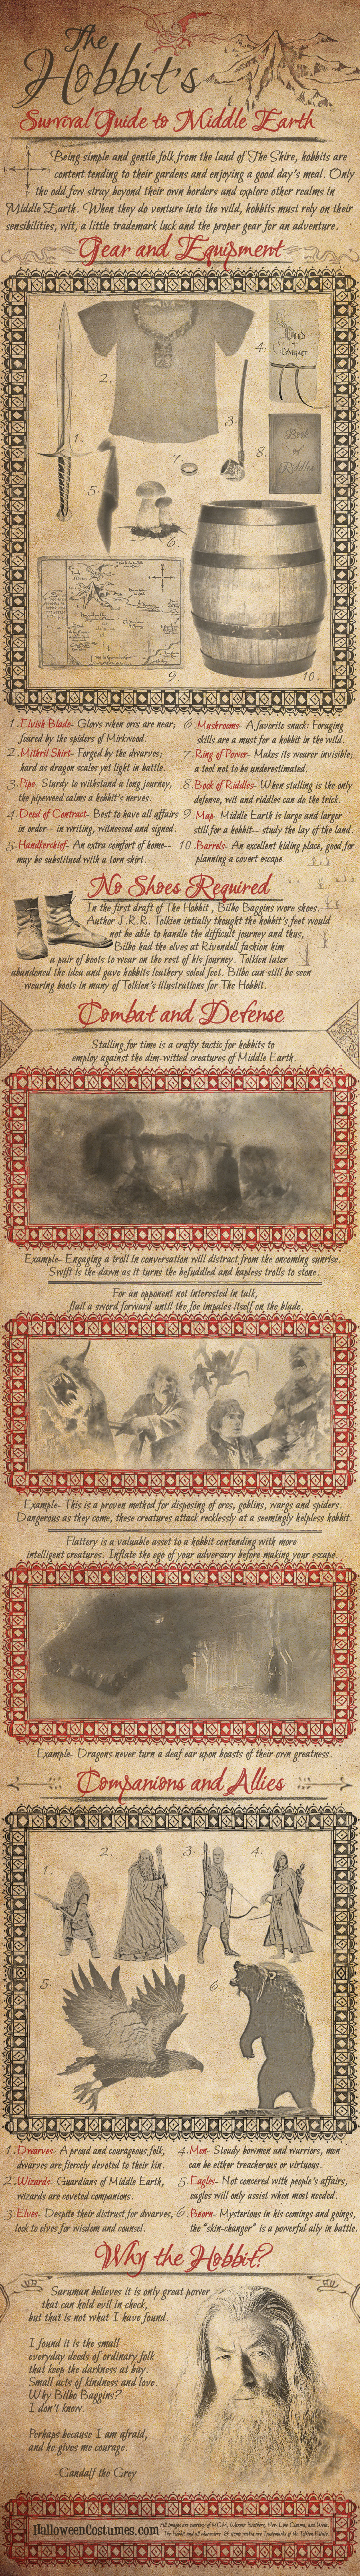 The Hobbit's Survival Guide to Middle Earth Infographic